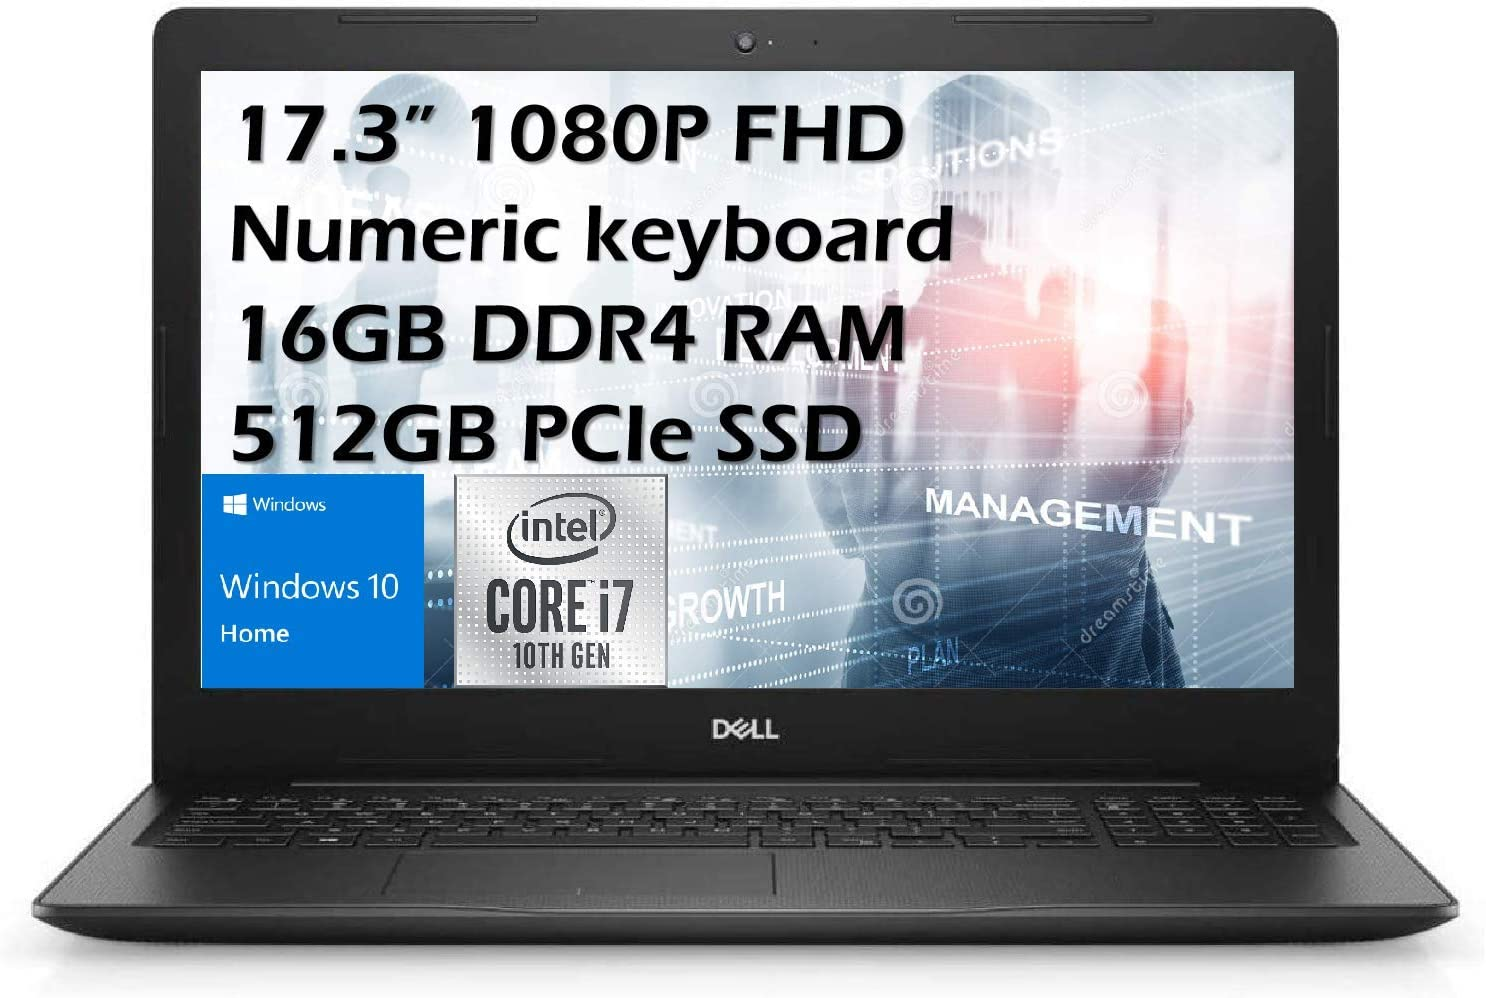 Dell 2020 Inspiron 17.3'' FHD Business Laptop, Intel i7-1065G7, 16GB DDR4 Memory, 512GB PCIe Solid State Drive, HDMI, WiFi, Webcam, DVD Drive, Win 10 Pro with E.S 32GB USB Card